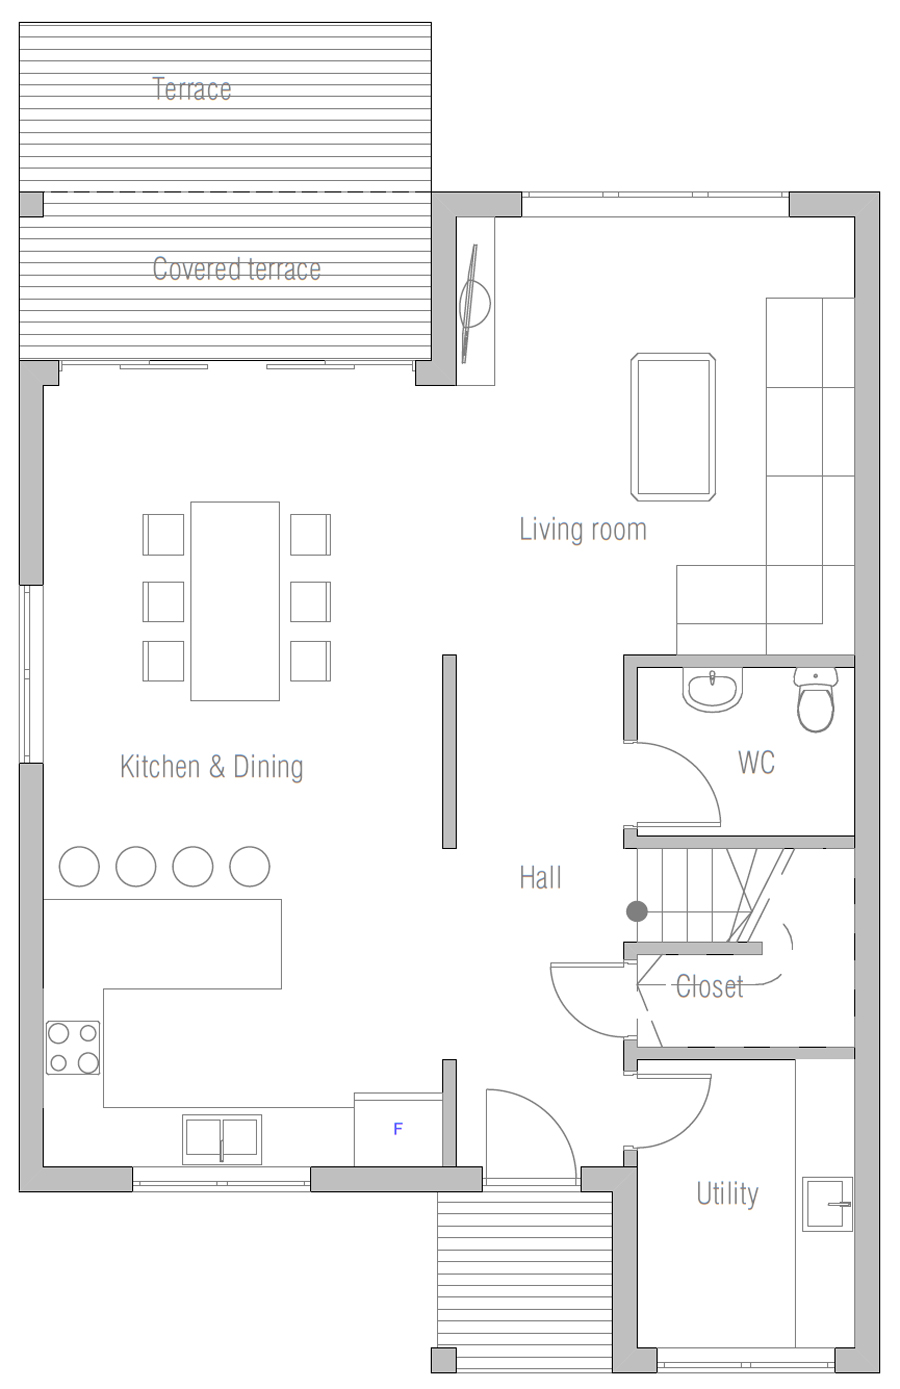 house design house-plan-ch471 10